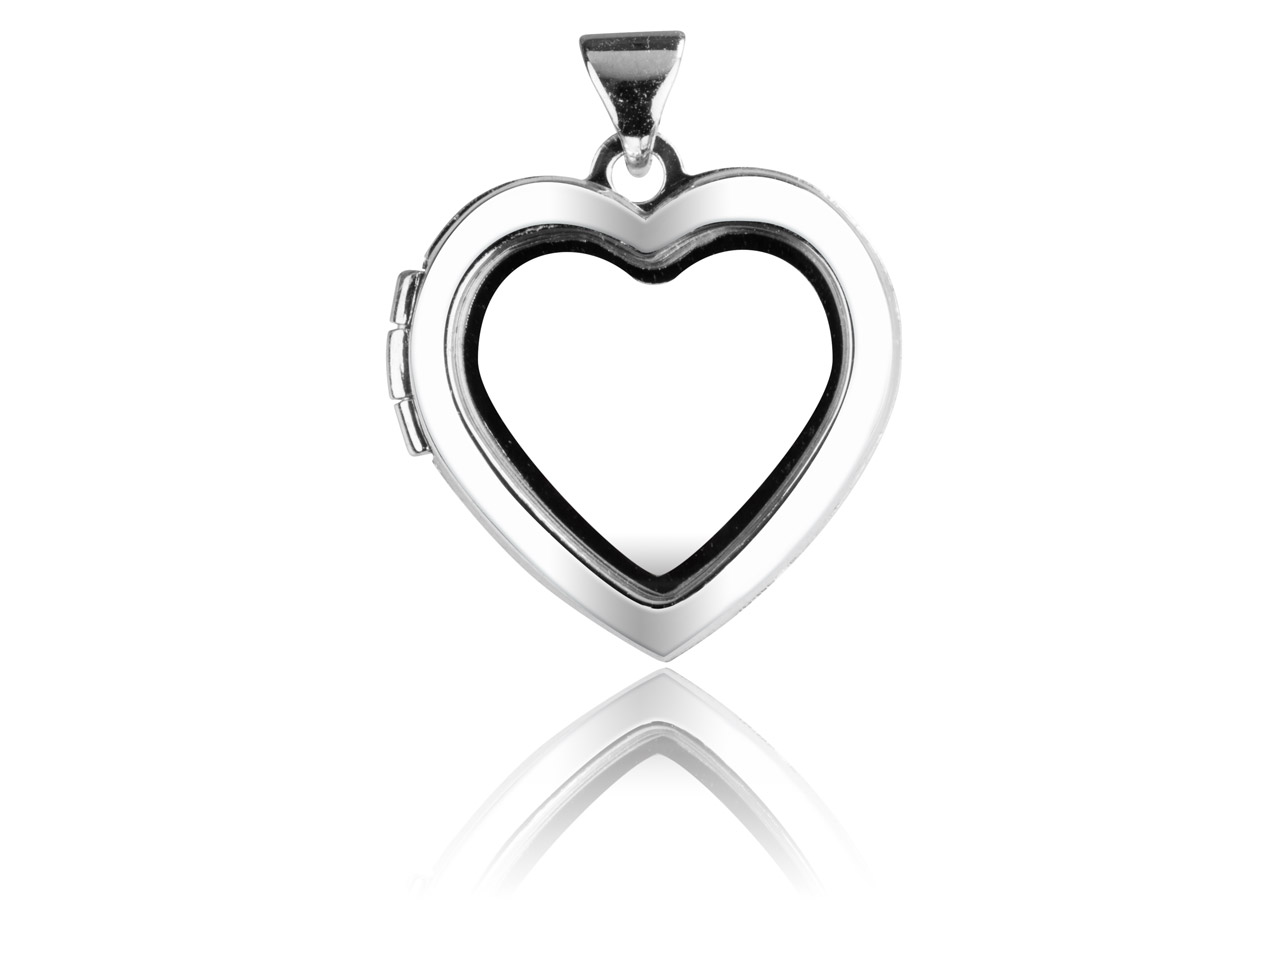 time mother s sabo blog mothers heart child a tree short sets set your holds open their silver thomassabo thomas hearts lockets for hand forever day